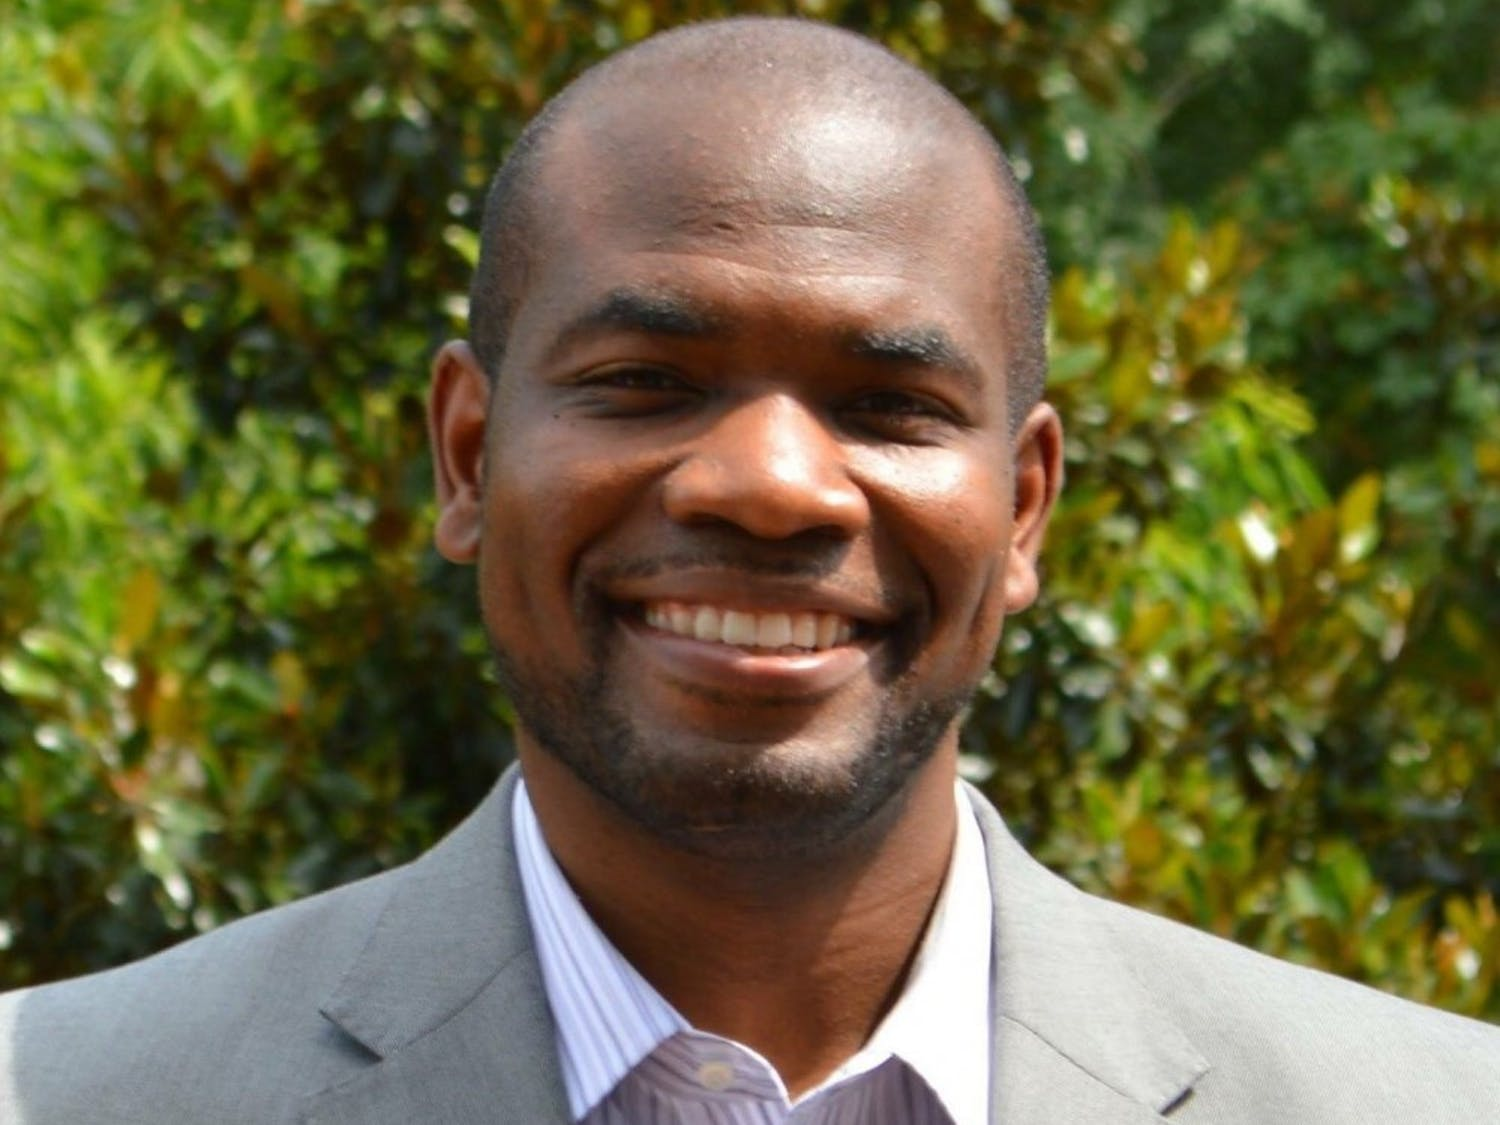 Chapel Hill Town Council member Allen Buansi's will not be running for reelection, he recently announced. Photo courtesy of Allen Buansi.